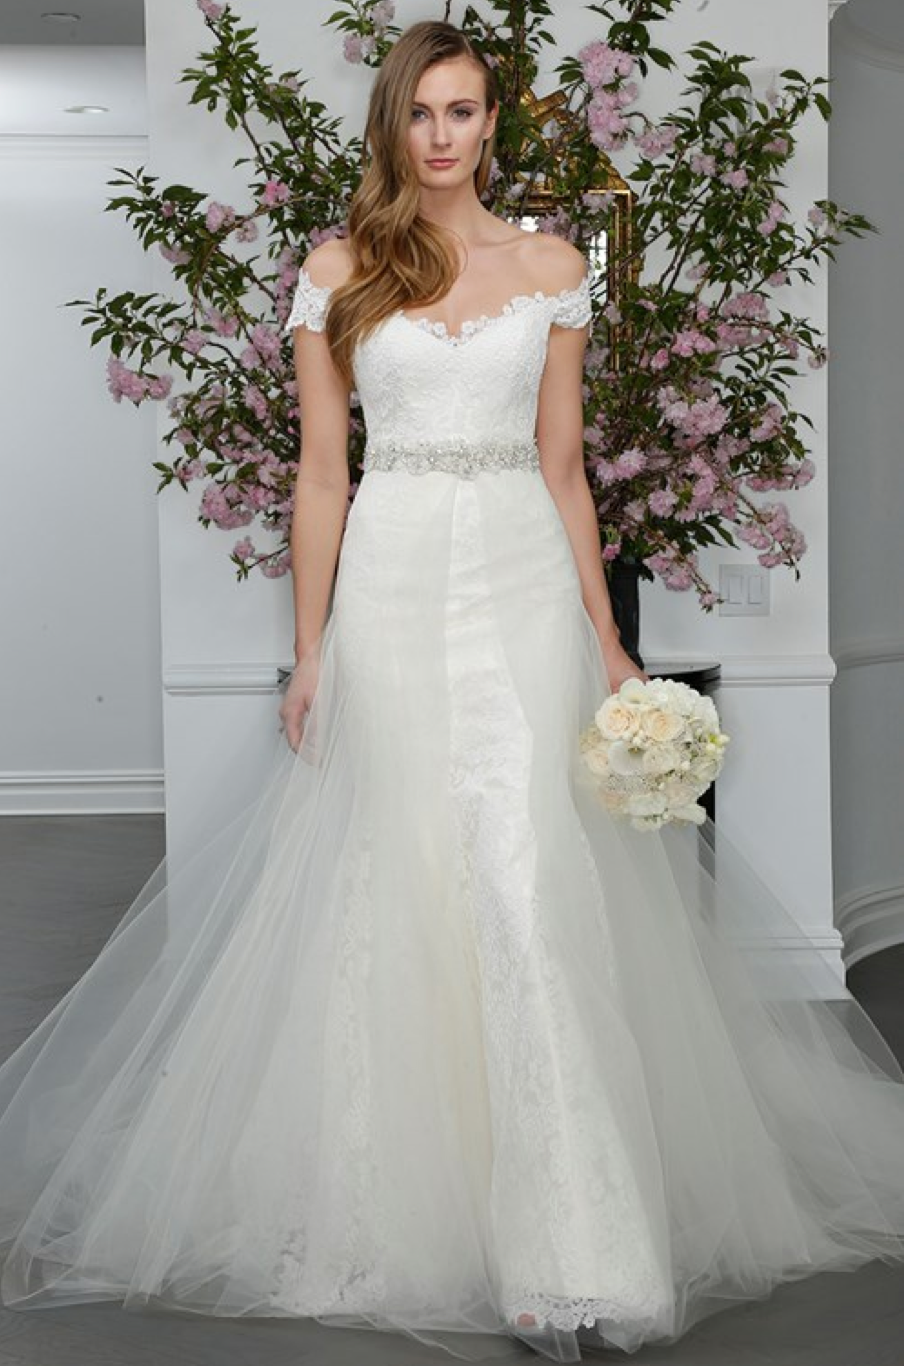 Kleinfeld bridesmaid dresses high cut wedding dresses for Wedding dress rental manhattan